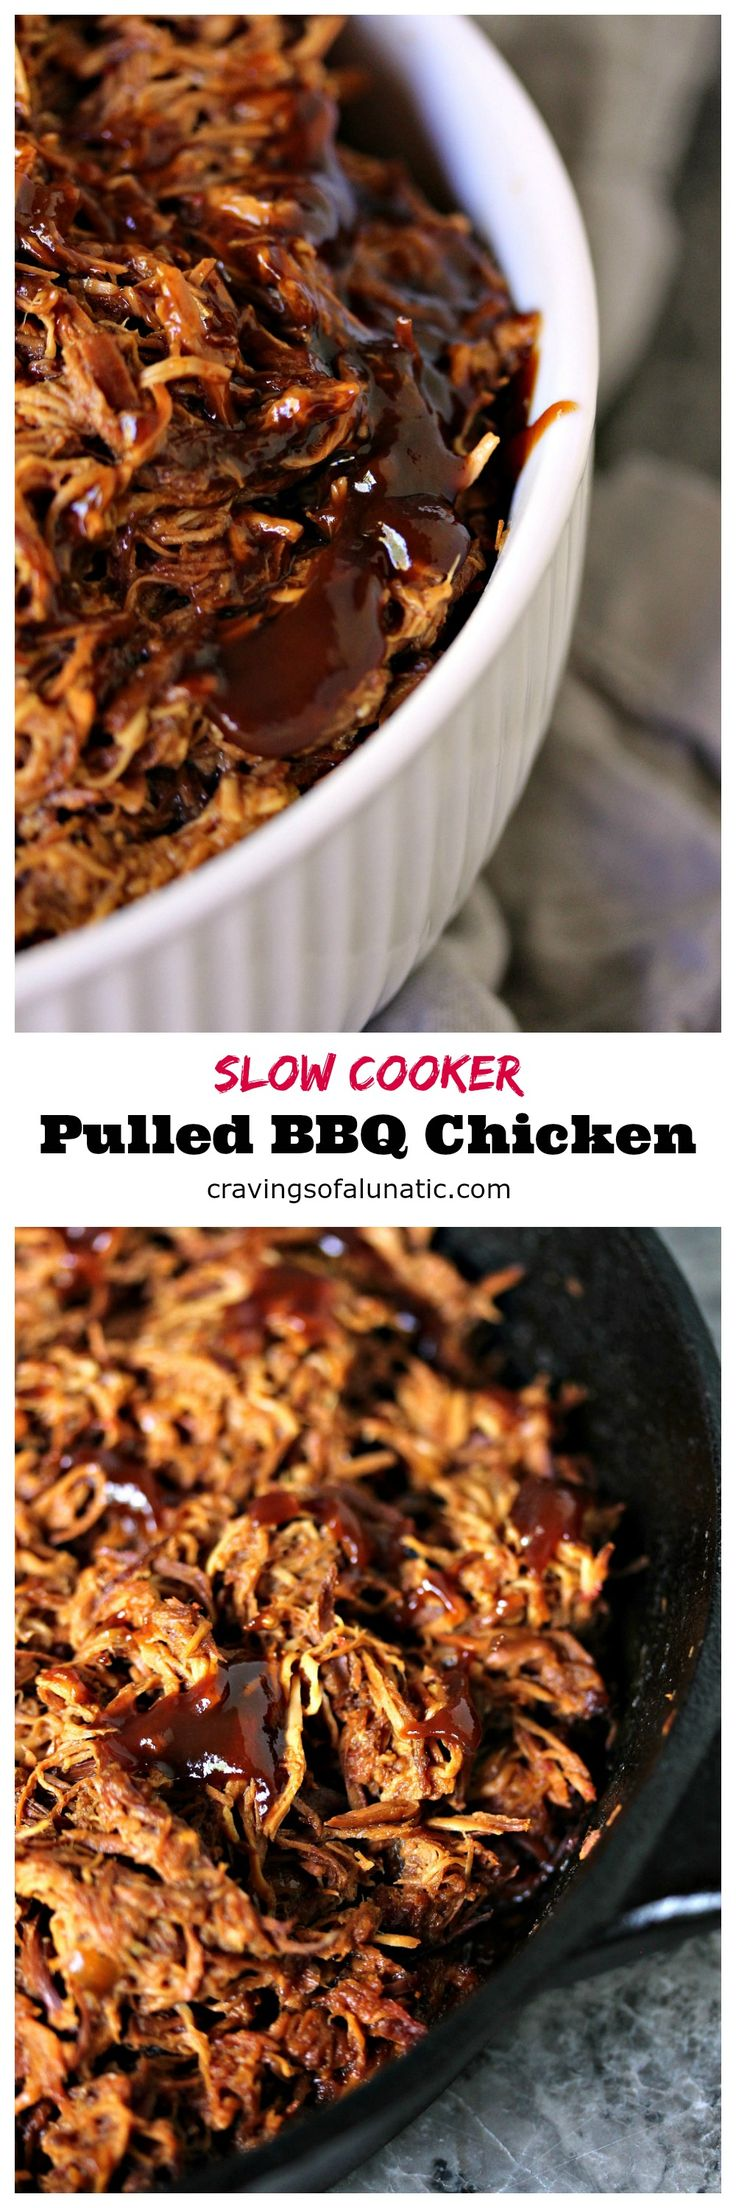 """Slow Cooker Pulled BBQ Chicken from cravingsofalunatic.com- This easy recipe for pulled BBQ chicken is made in the slow cooker with just a few ingredients. It's a great """"set it and forget it"""" recipe. Eat it plain, or pile it high on a slider bun!"""